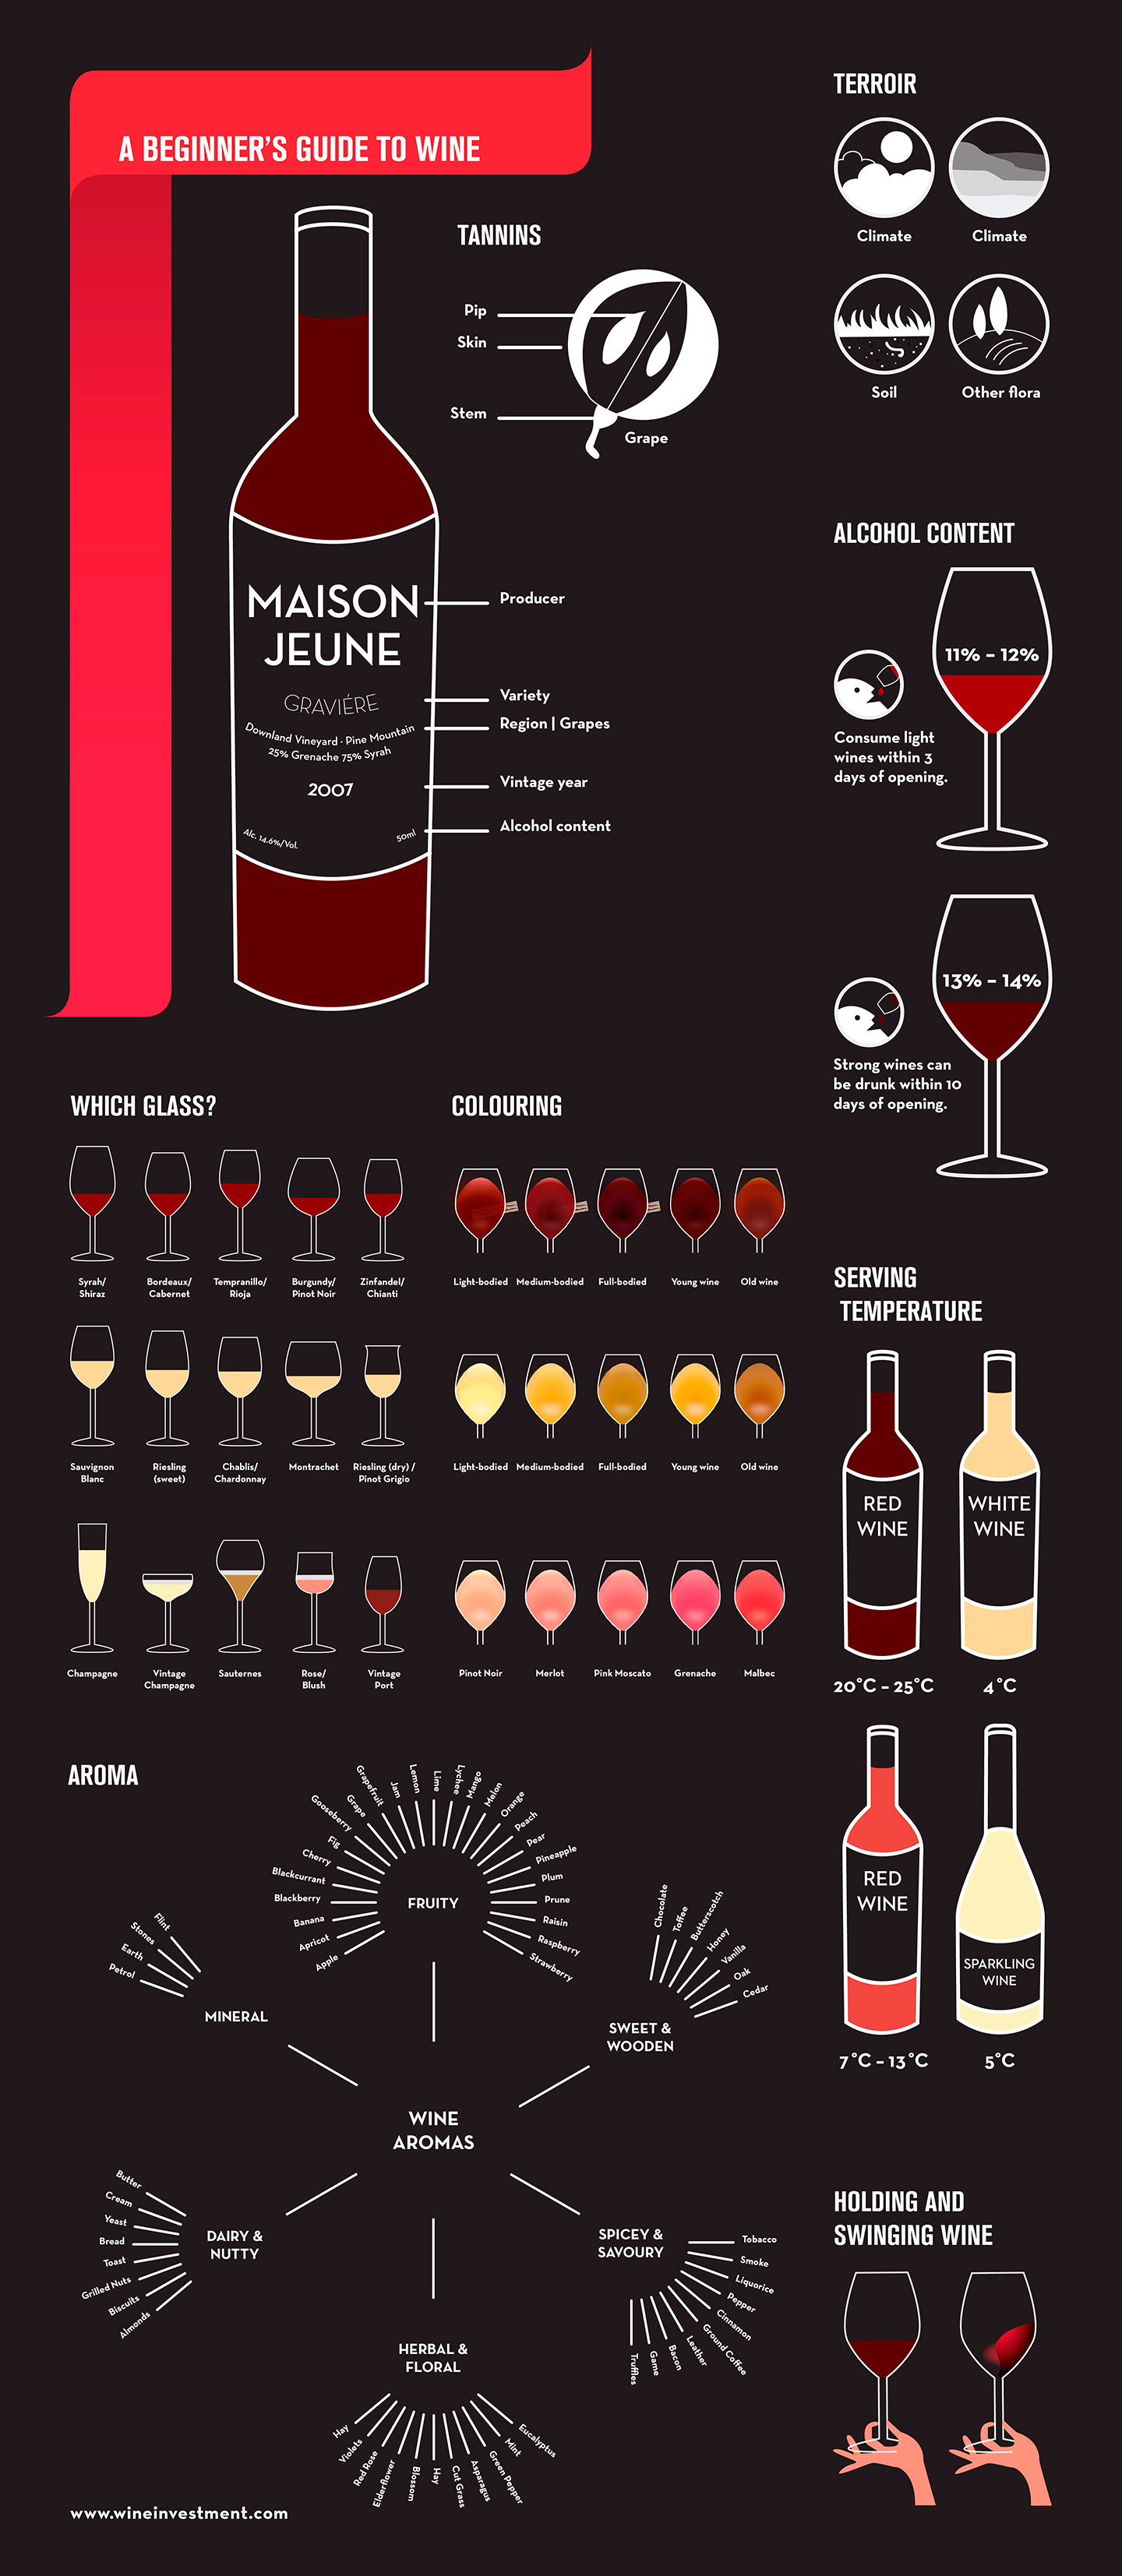 Guide to Wine.